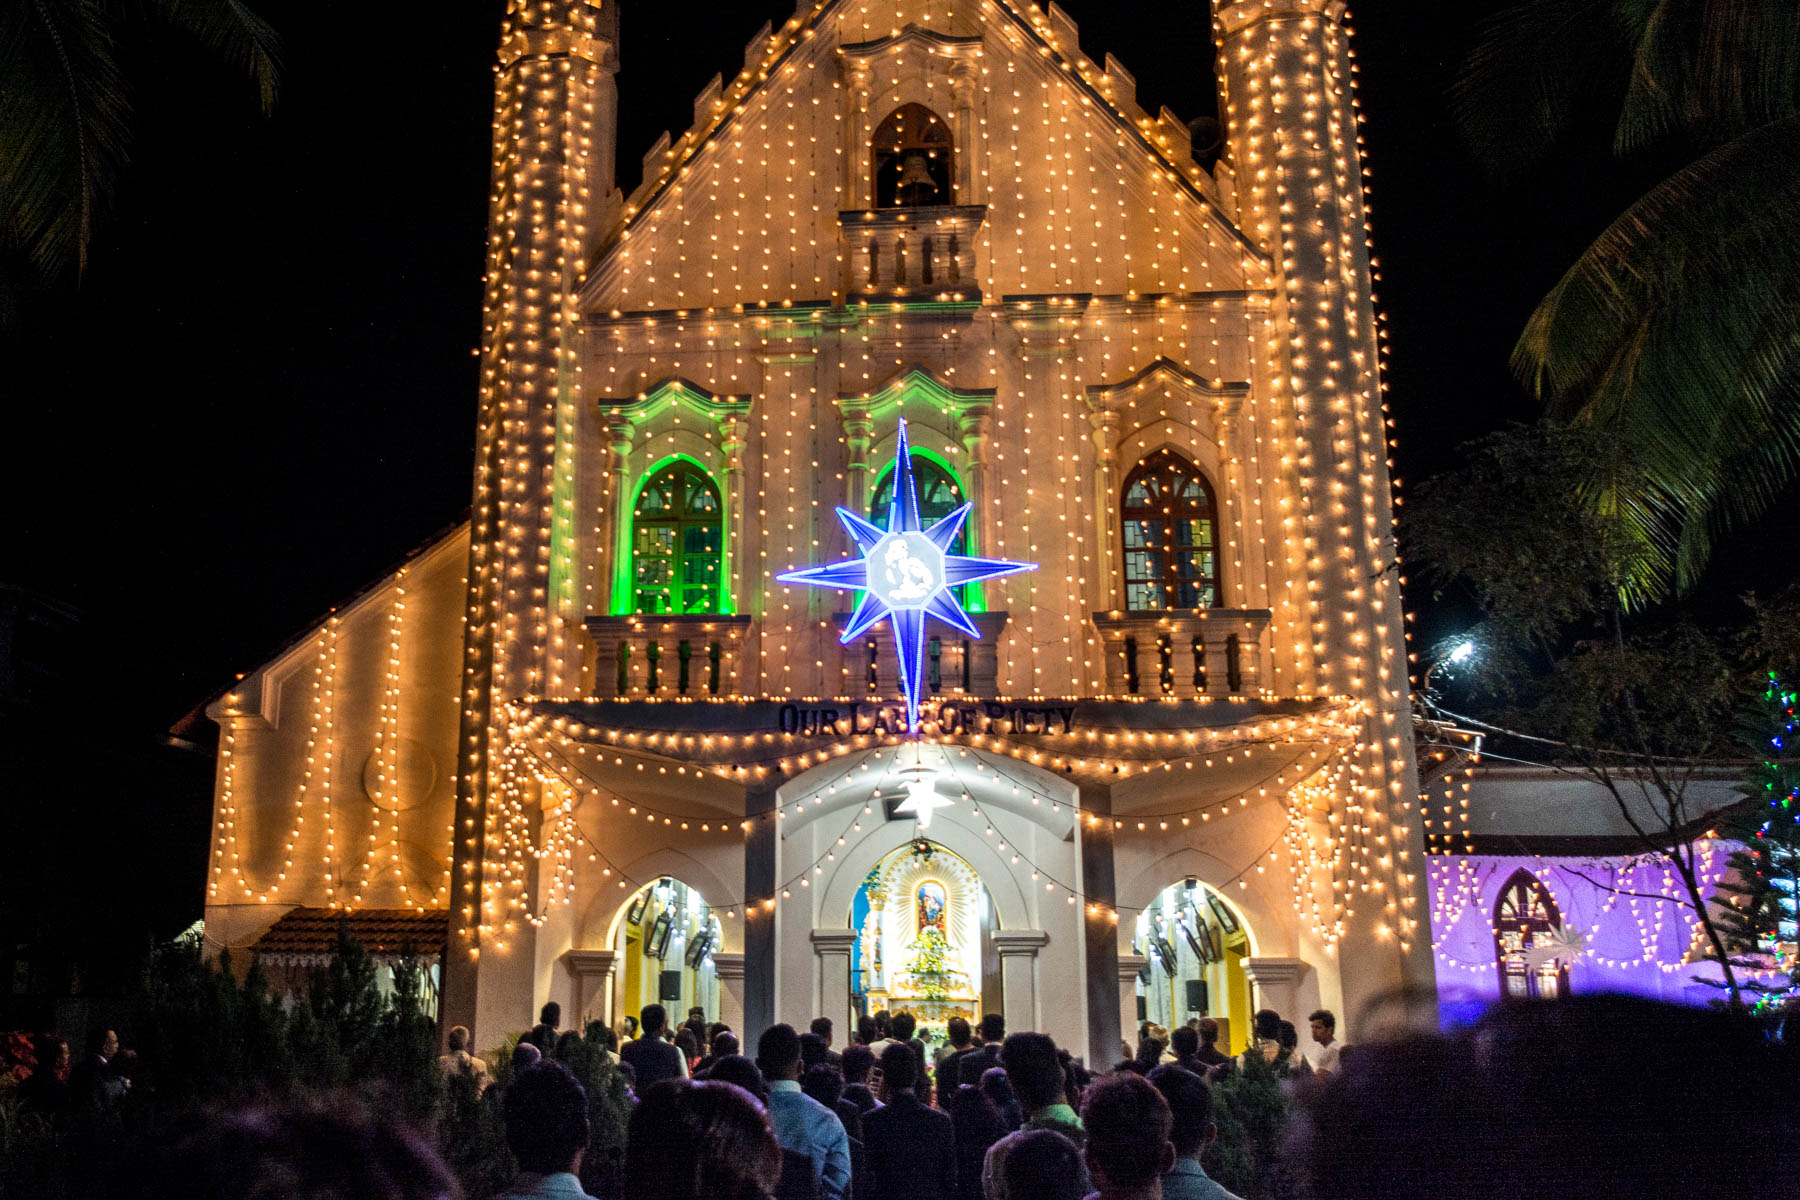 Our Lady of Piety church in Calangute